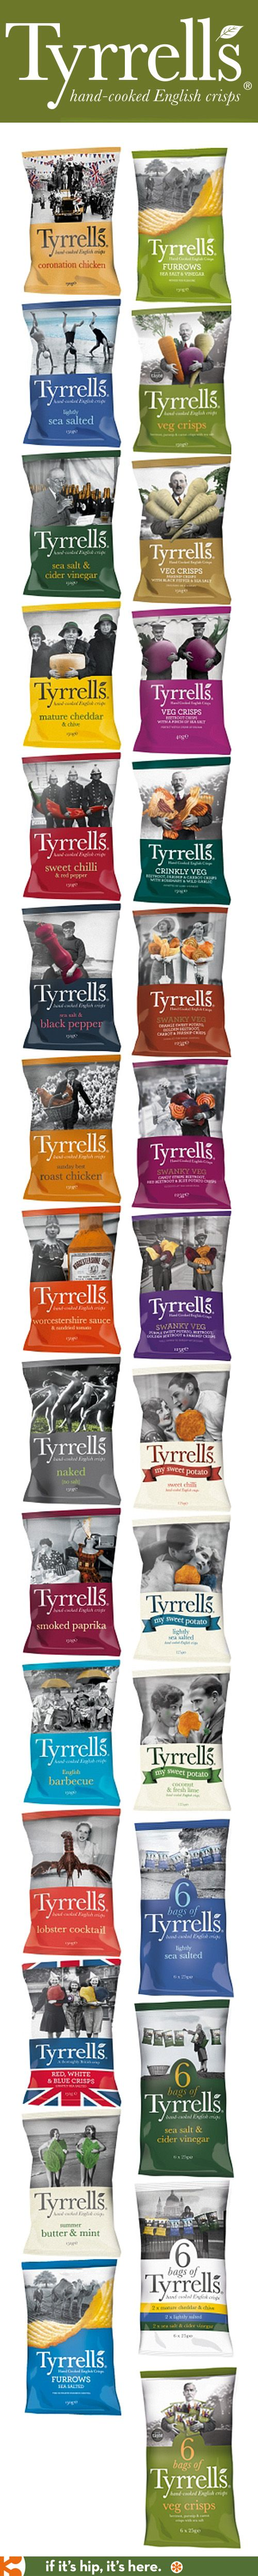 All of Tyrrell's snack products have great packaging. These are just their crips…